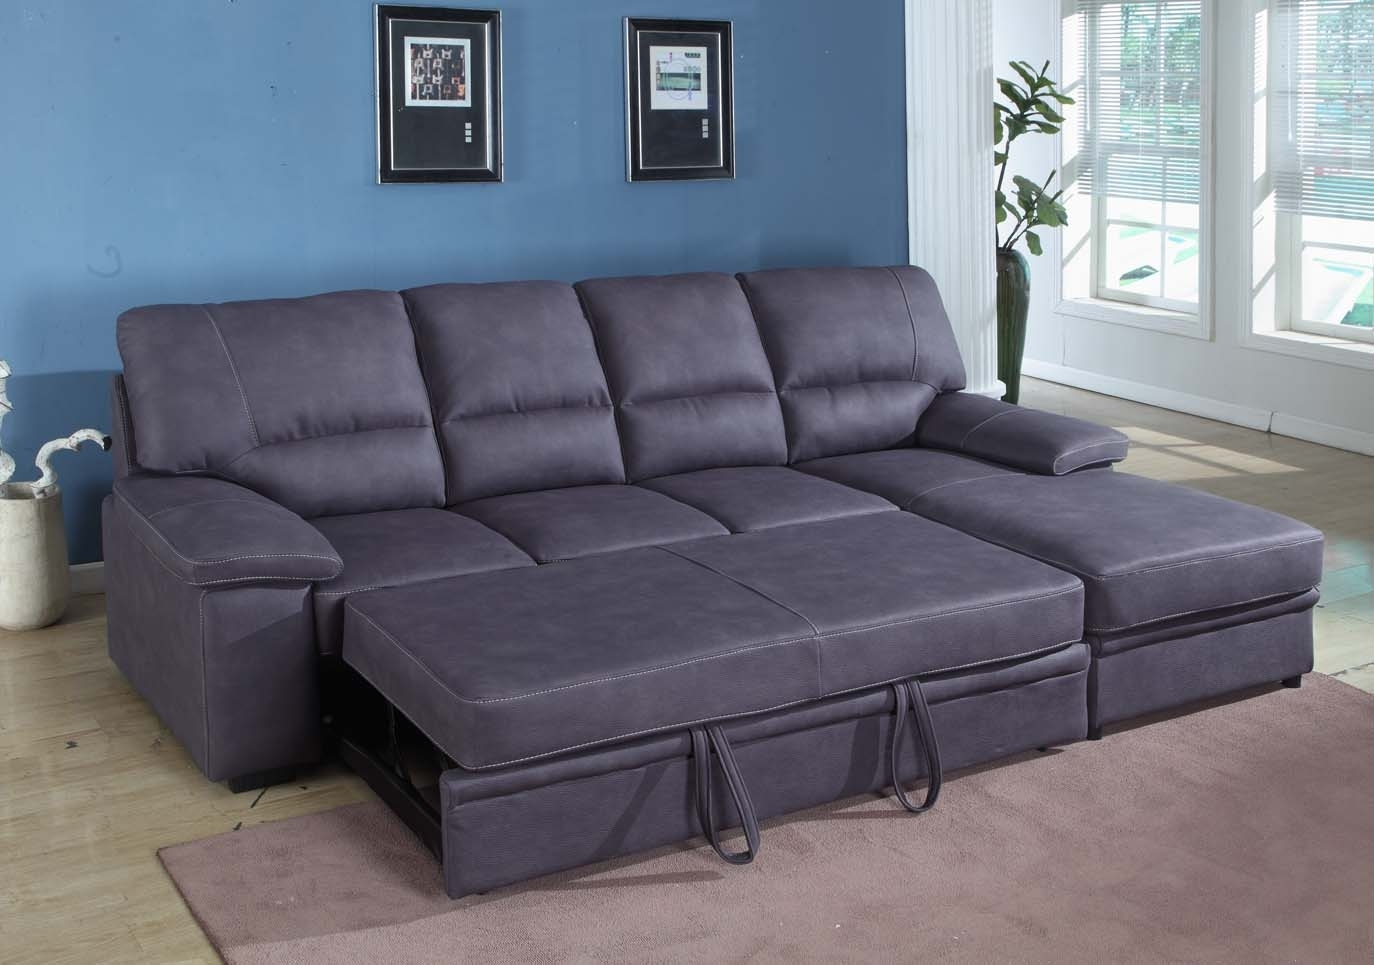 Furniture : Sectional Sofa Nj Best Sectional Sofa Under 500 Intended For Vt Sectional Sofas (View 7 of 10)